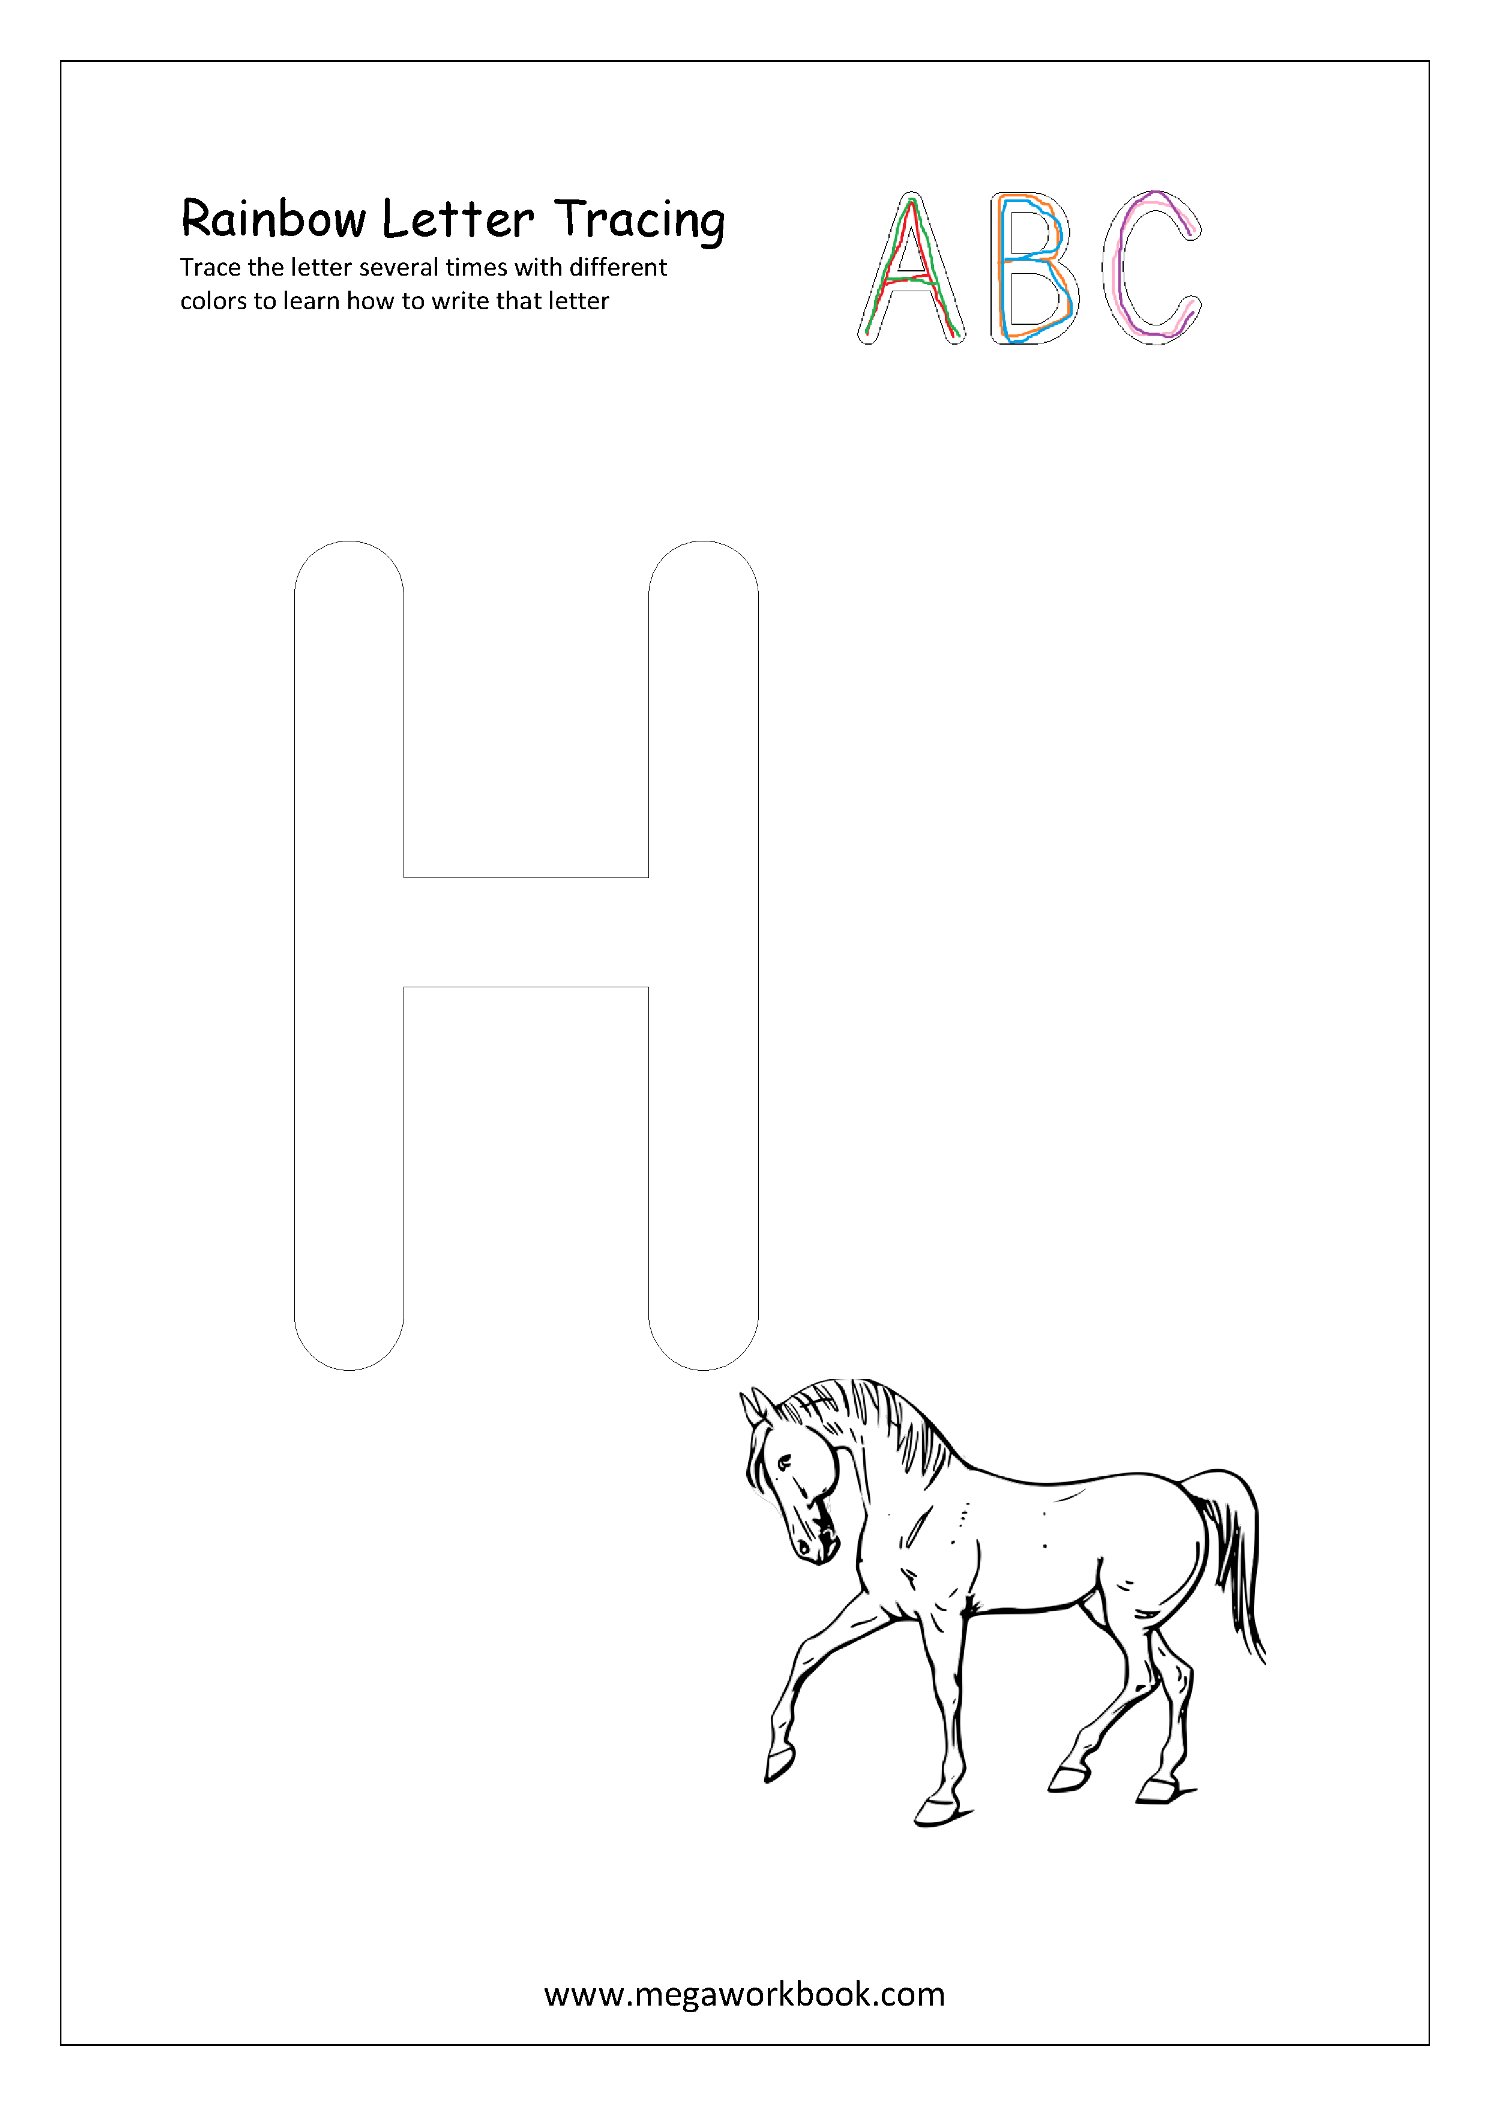 Free Printable Rainbow Writing Worksheets - Rainbow Letter within Rainbow Tracing Letters